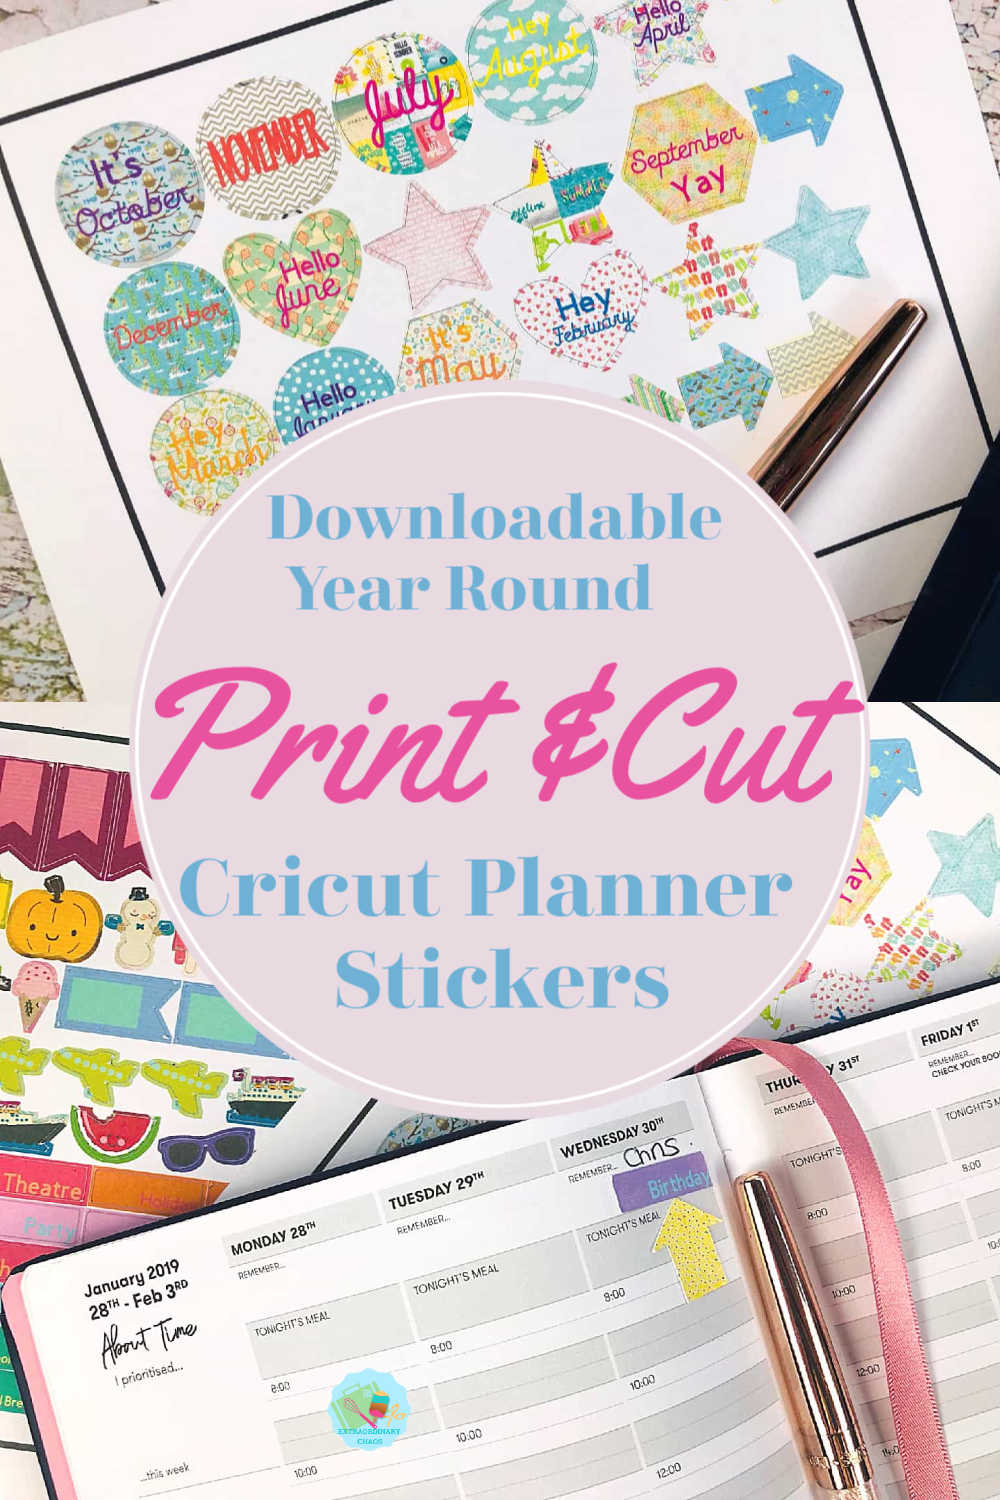 Free Downloadable Year Round Cricut Planner Stickers for all the months and seasons of the year.